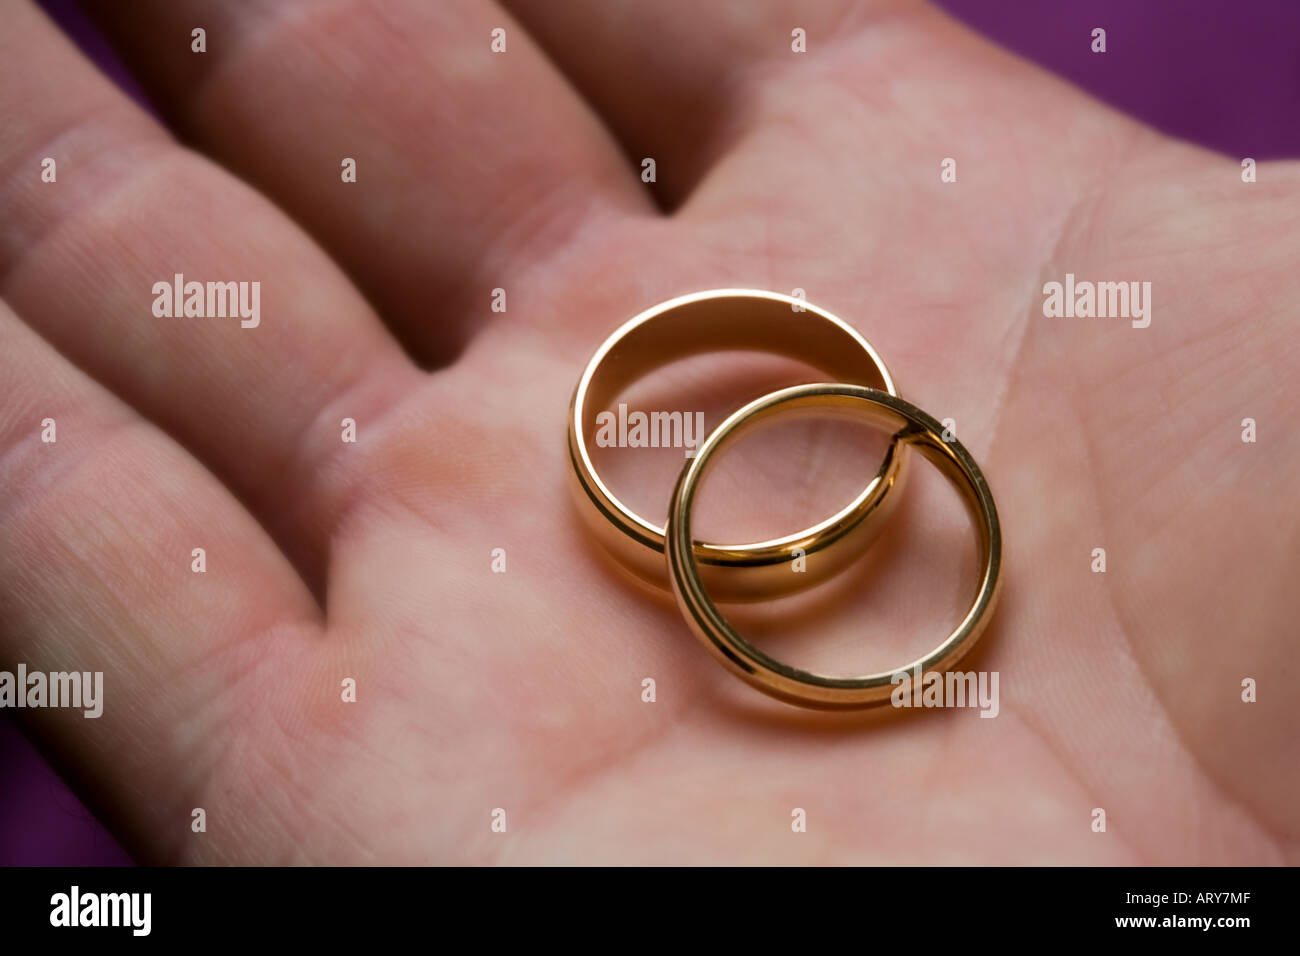 Nuptual Stock Photos & Nuptual Stock Images - Alamy